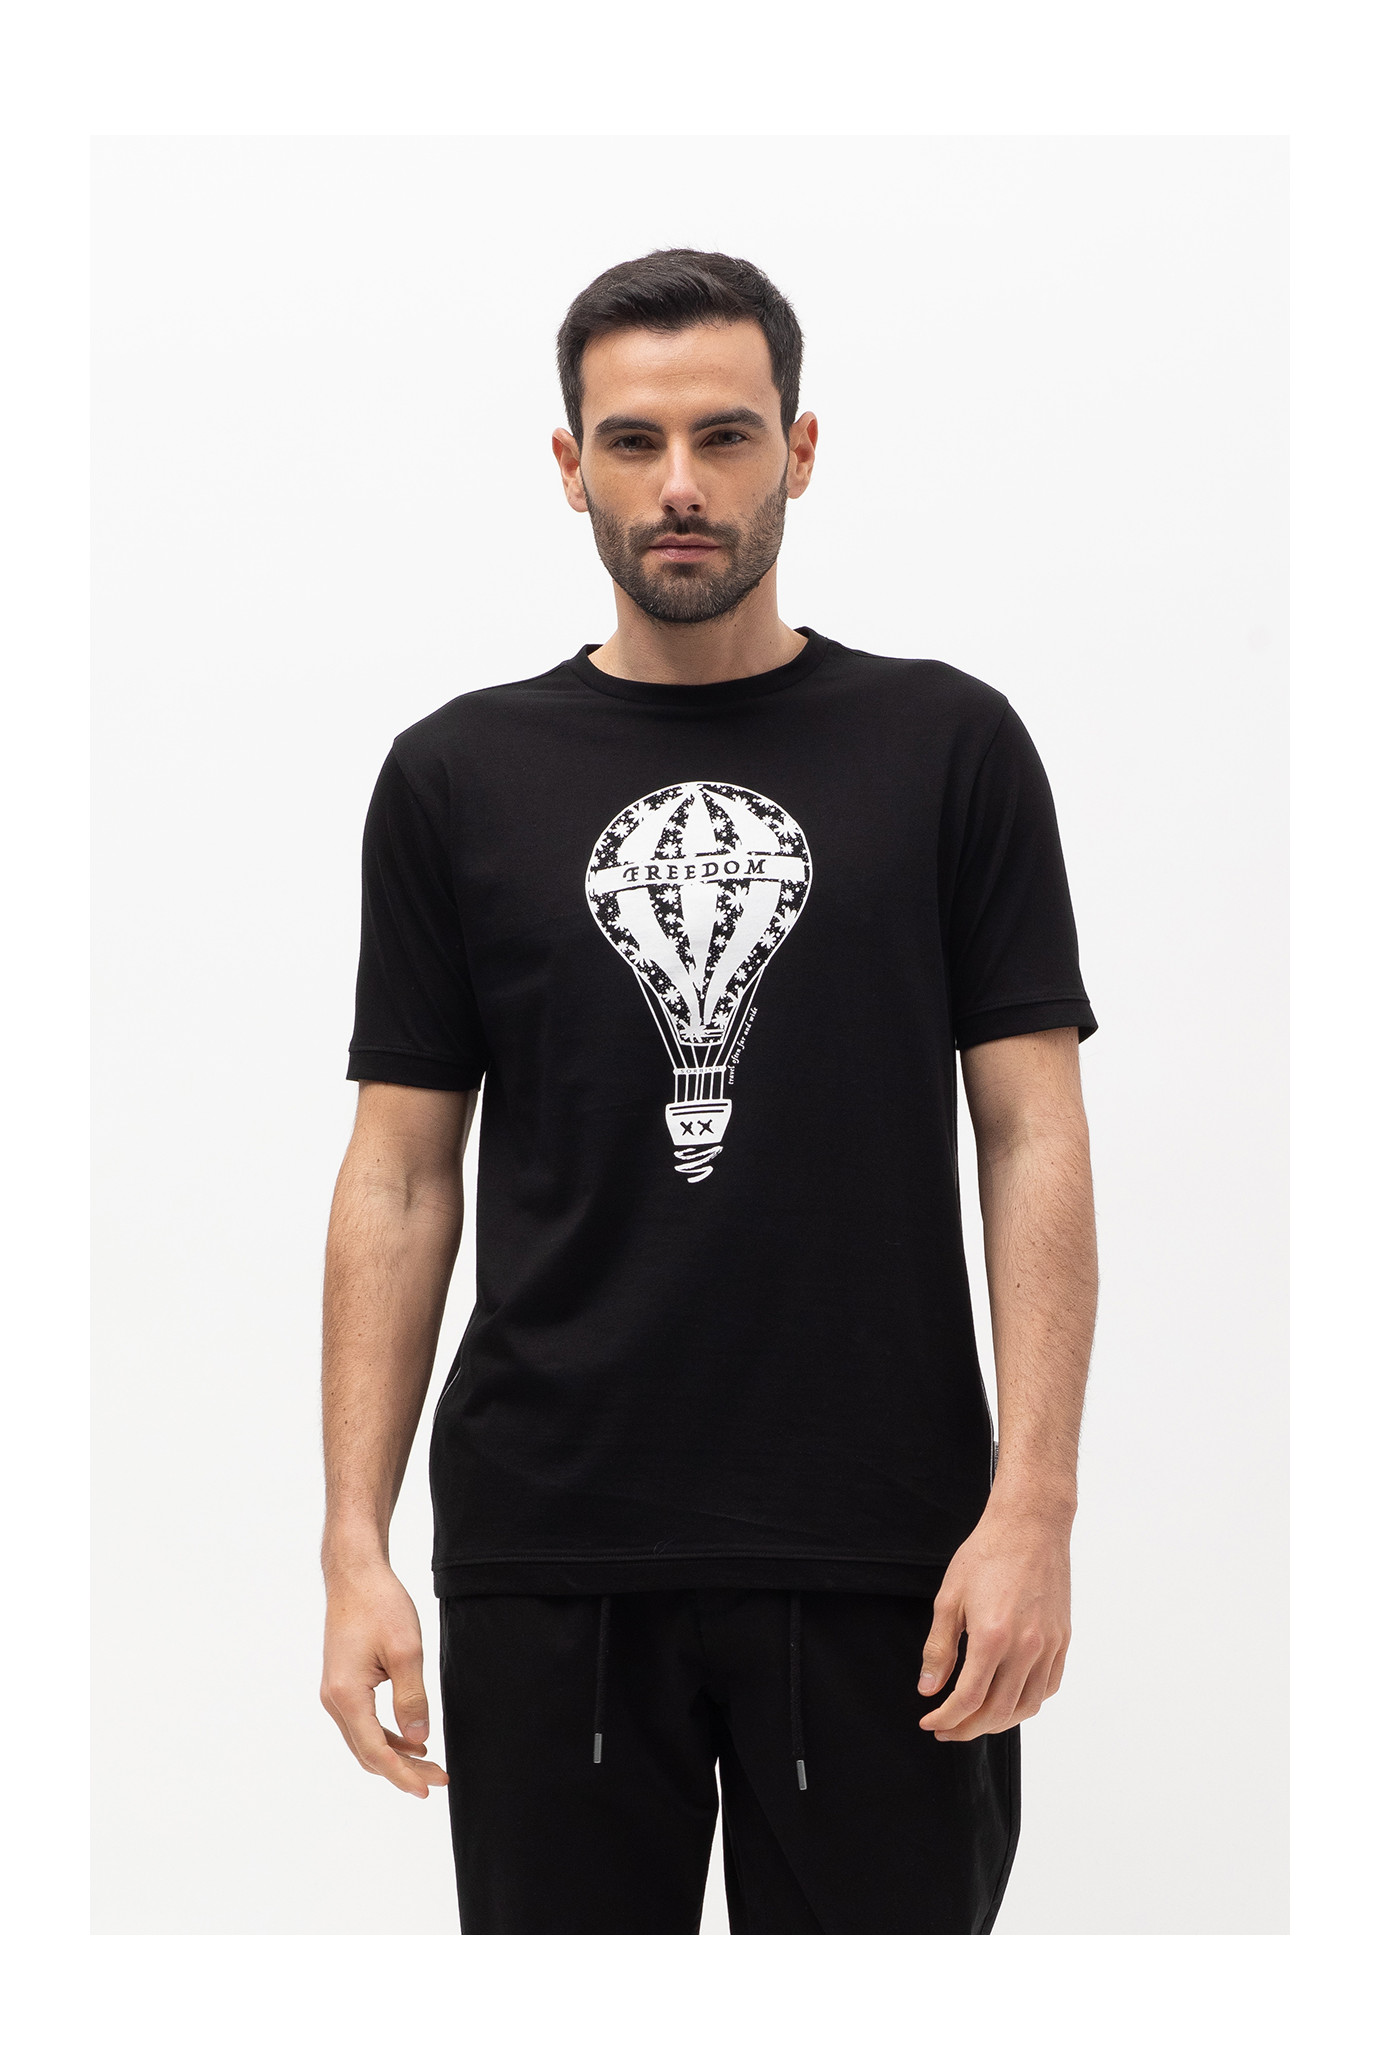 T-SHIRT CON STAMPA FRONTALE MONGOLFIERA